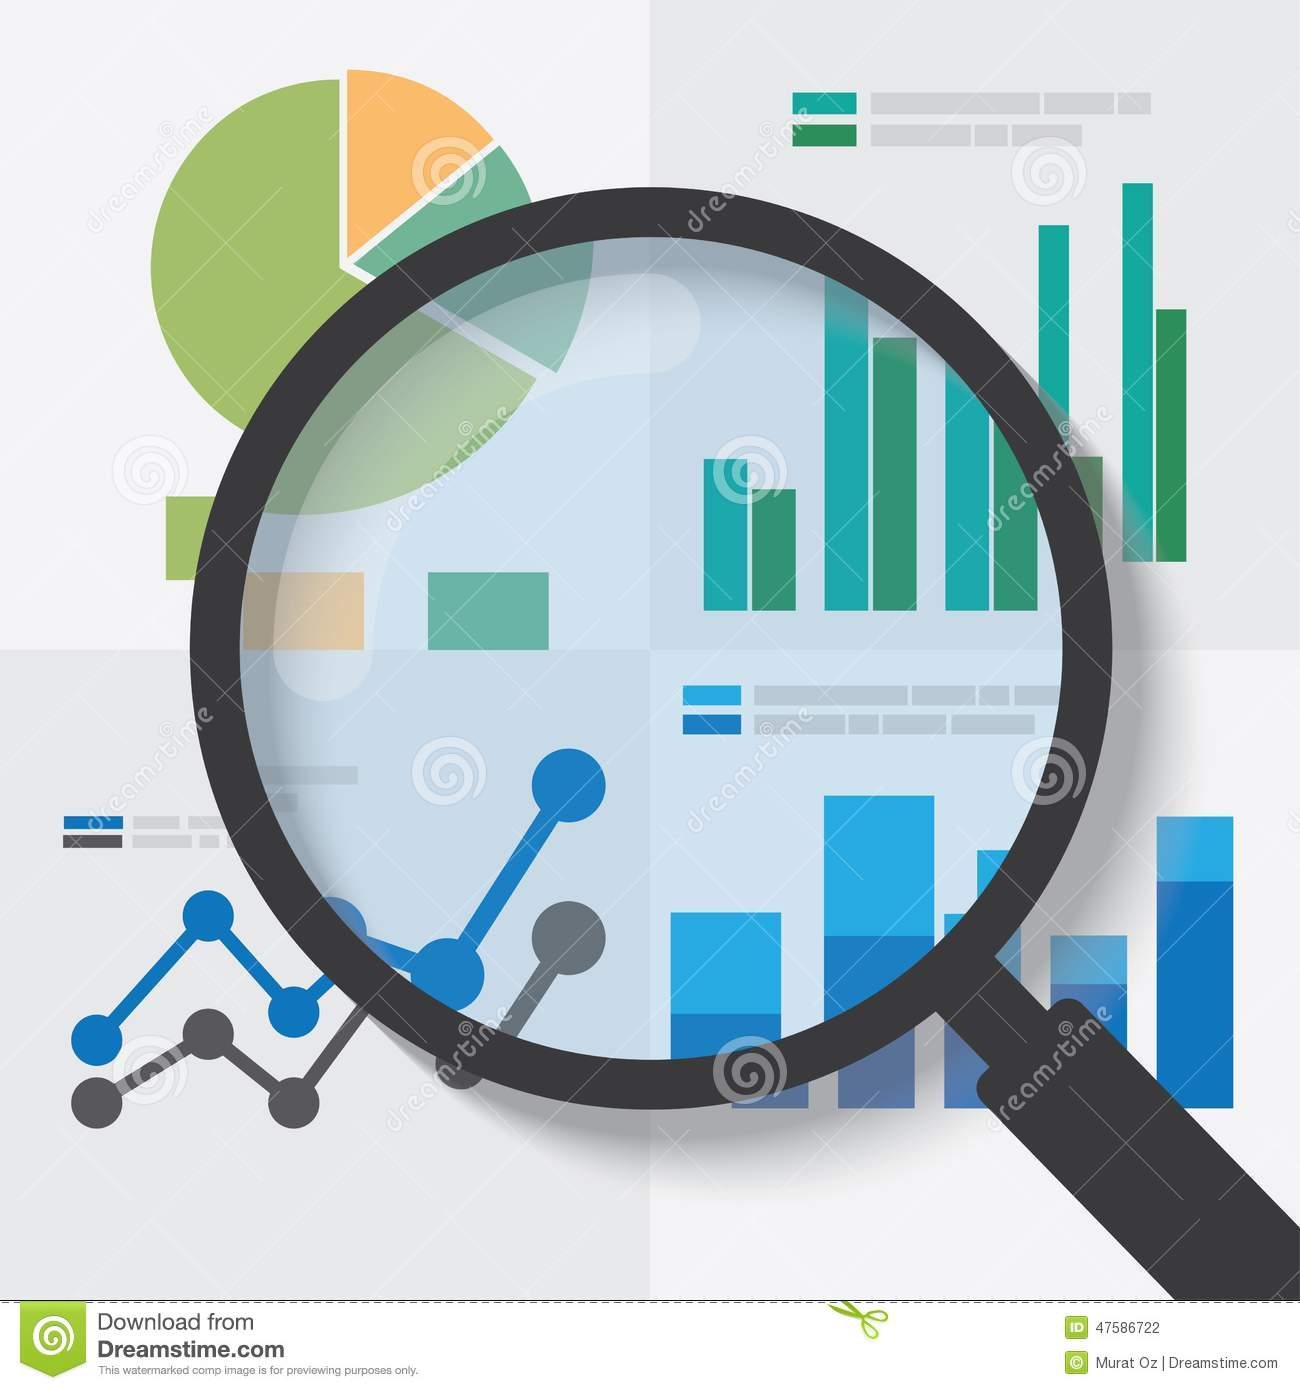 mock research and analysis report Competitor analysis in marketing and strategic management is an assessment of the strengths and weaknesses of current and potential competitorsthis analysis provides both an offensive and defensive strategic context to identify opportunities and threats.